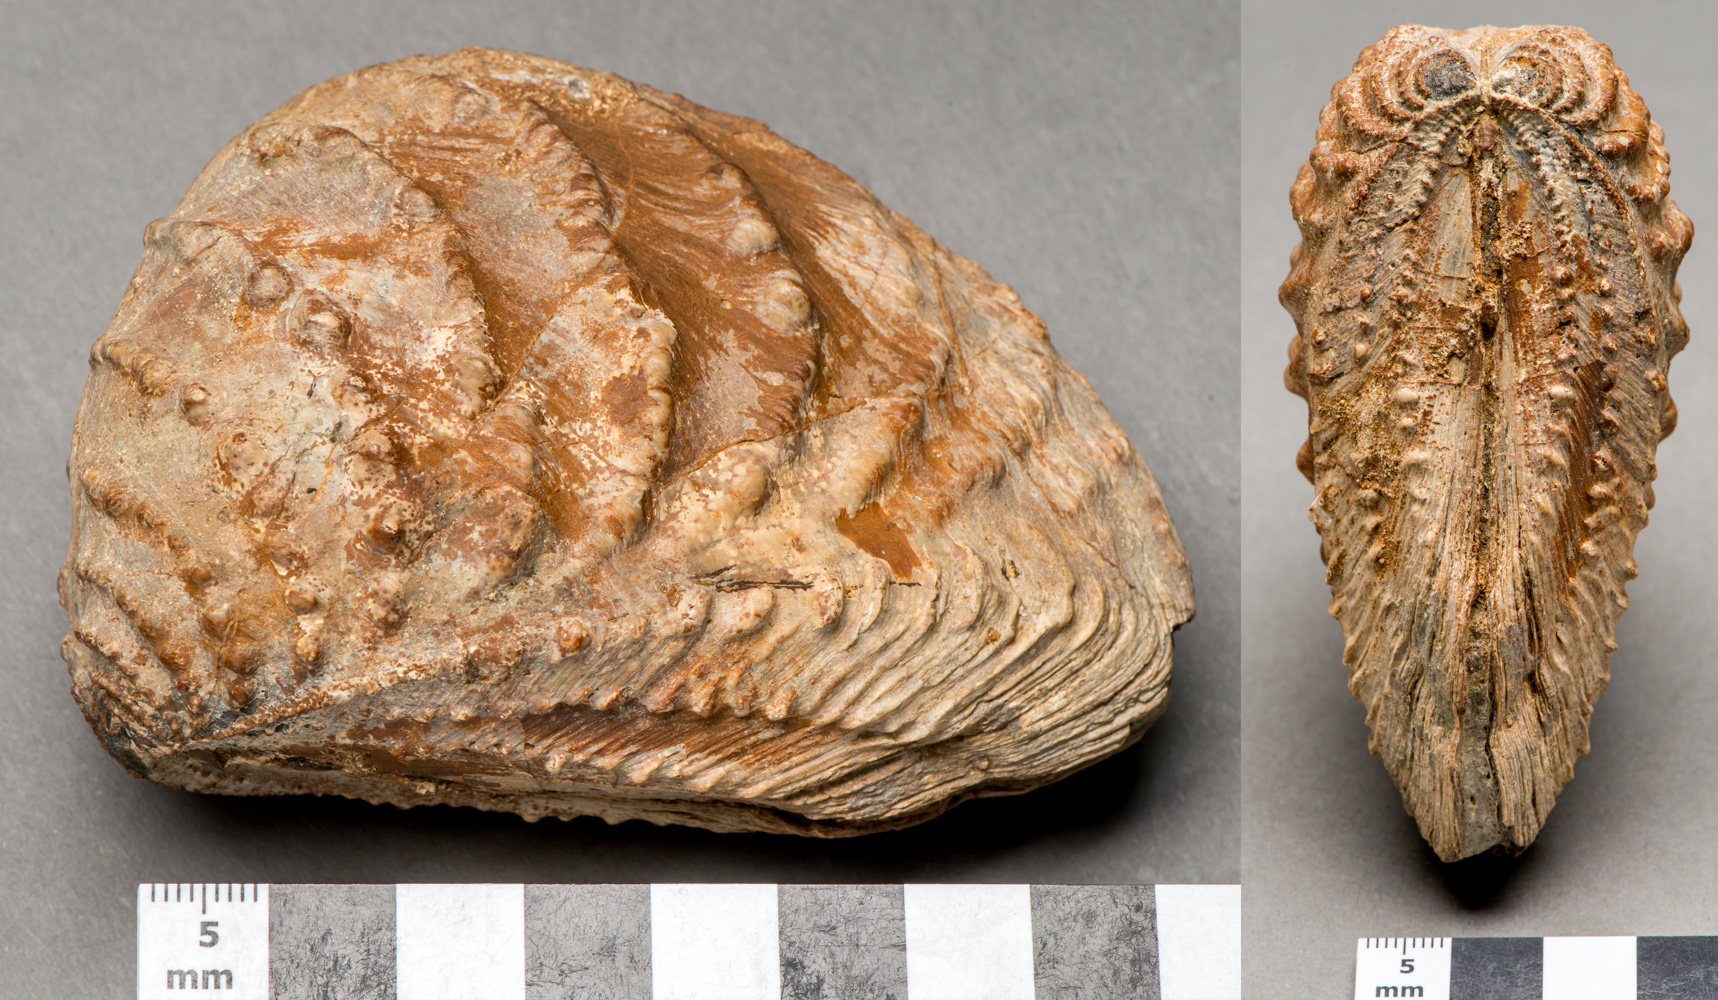 two views of a bivalve shell in the collection of Fairlynch Museum, Budleigh Salterton